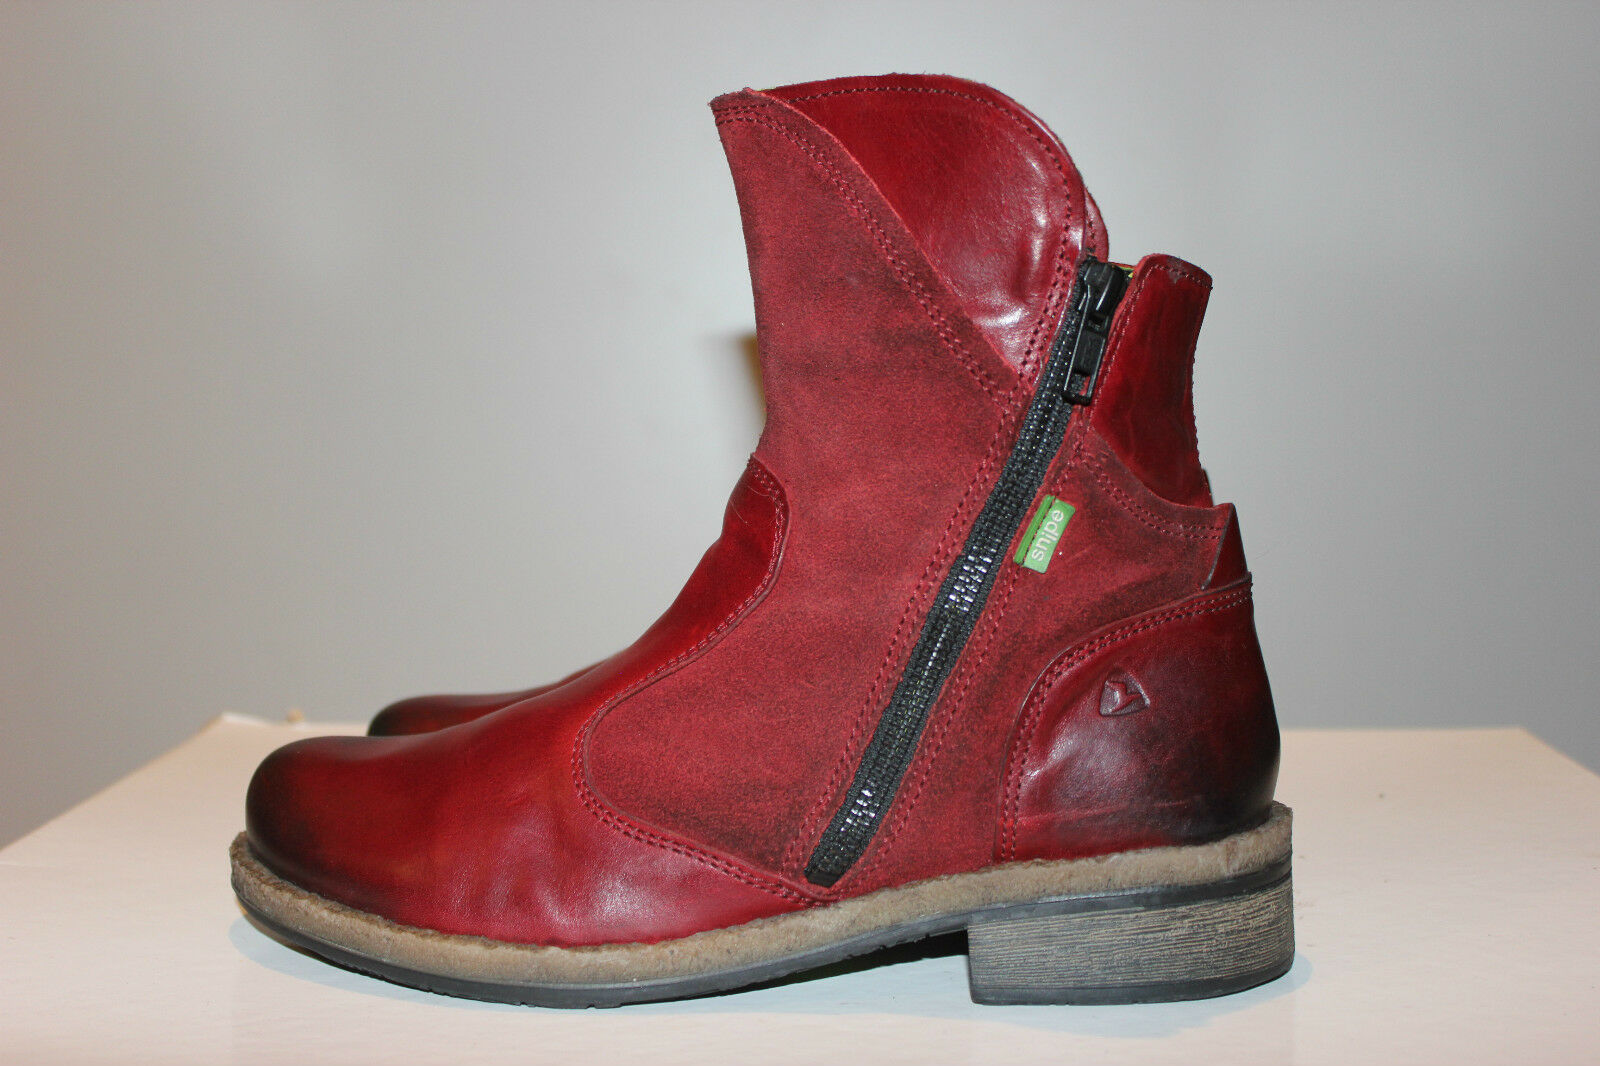 Snipe Super Beautiful Red Real Leather Biker Boots, Size 38, Excellent Condition